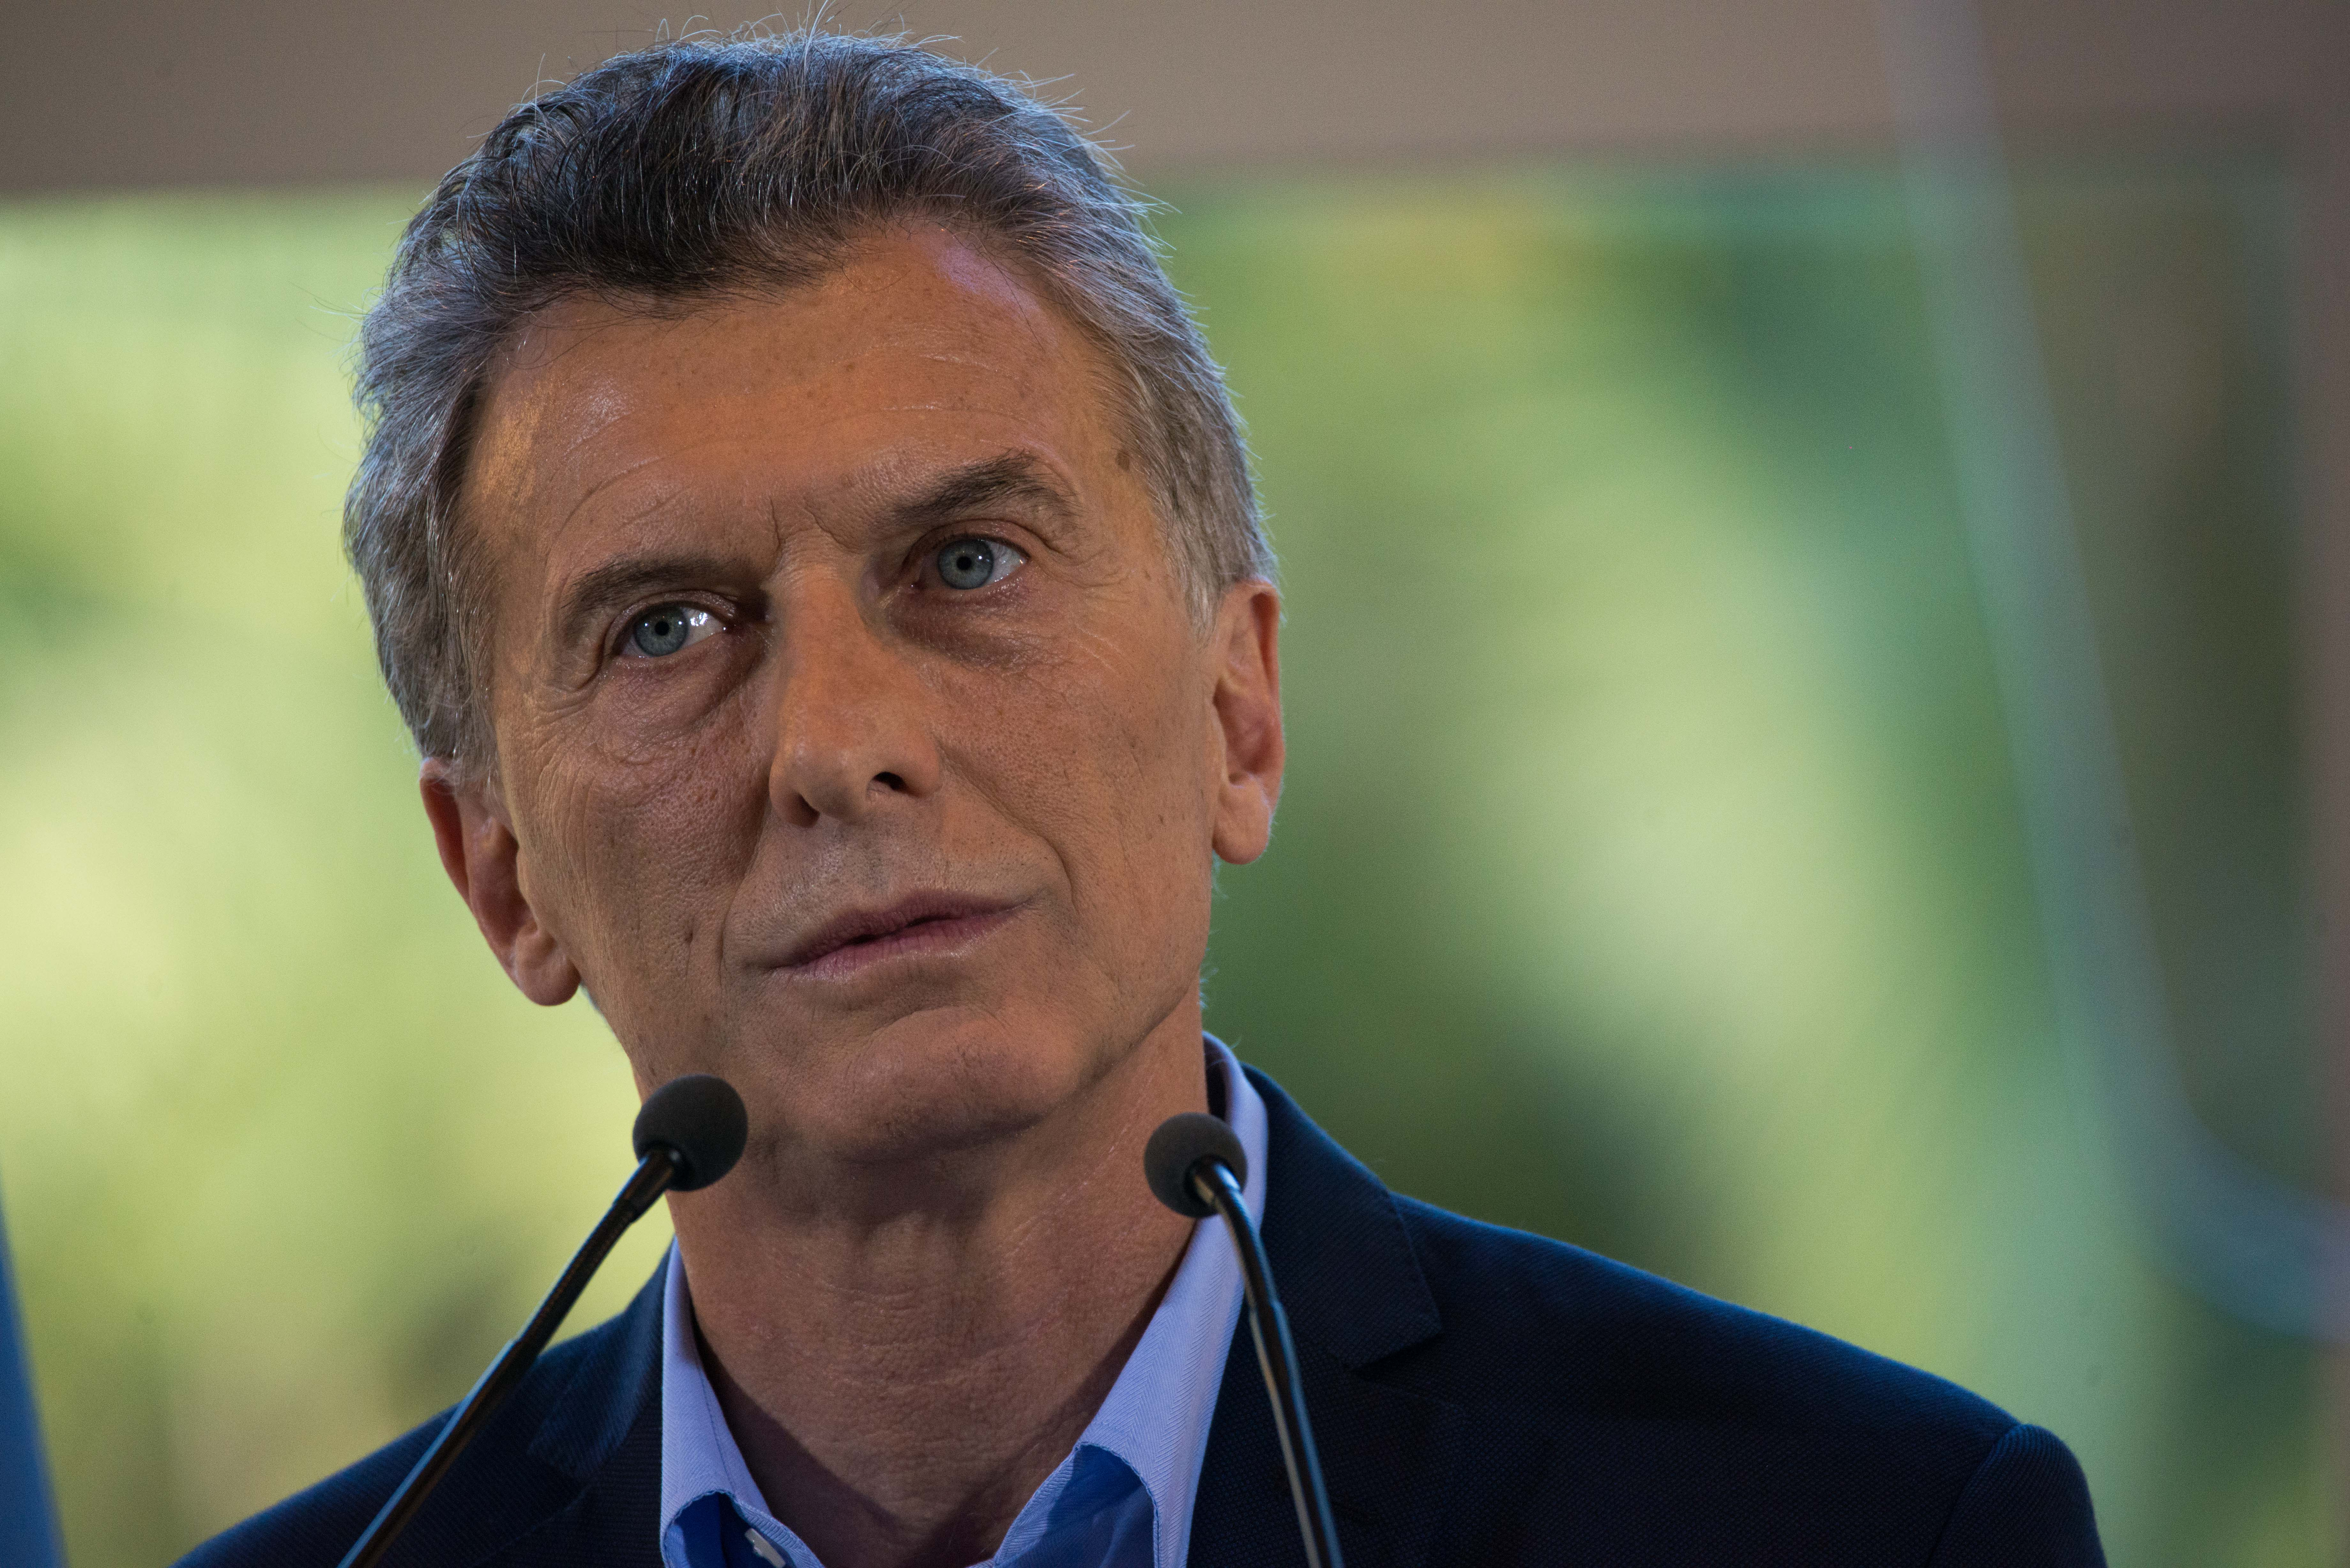 Argentina's President Mauricio Macri talks during a press conference at Quinta de Olivos in Buenos Aires, Argentina, Wednesday, March 28, 2017.